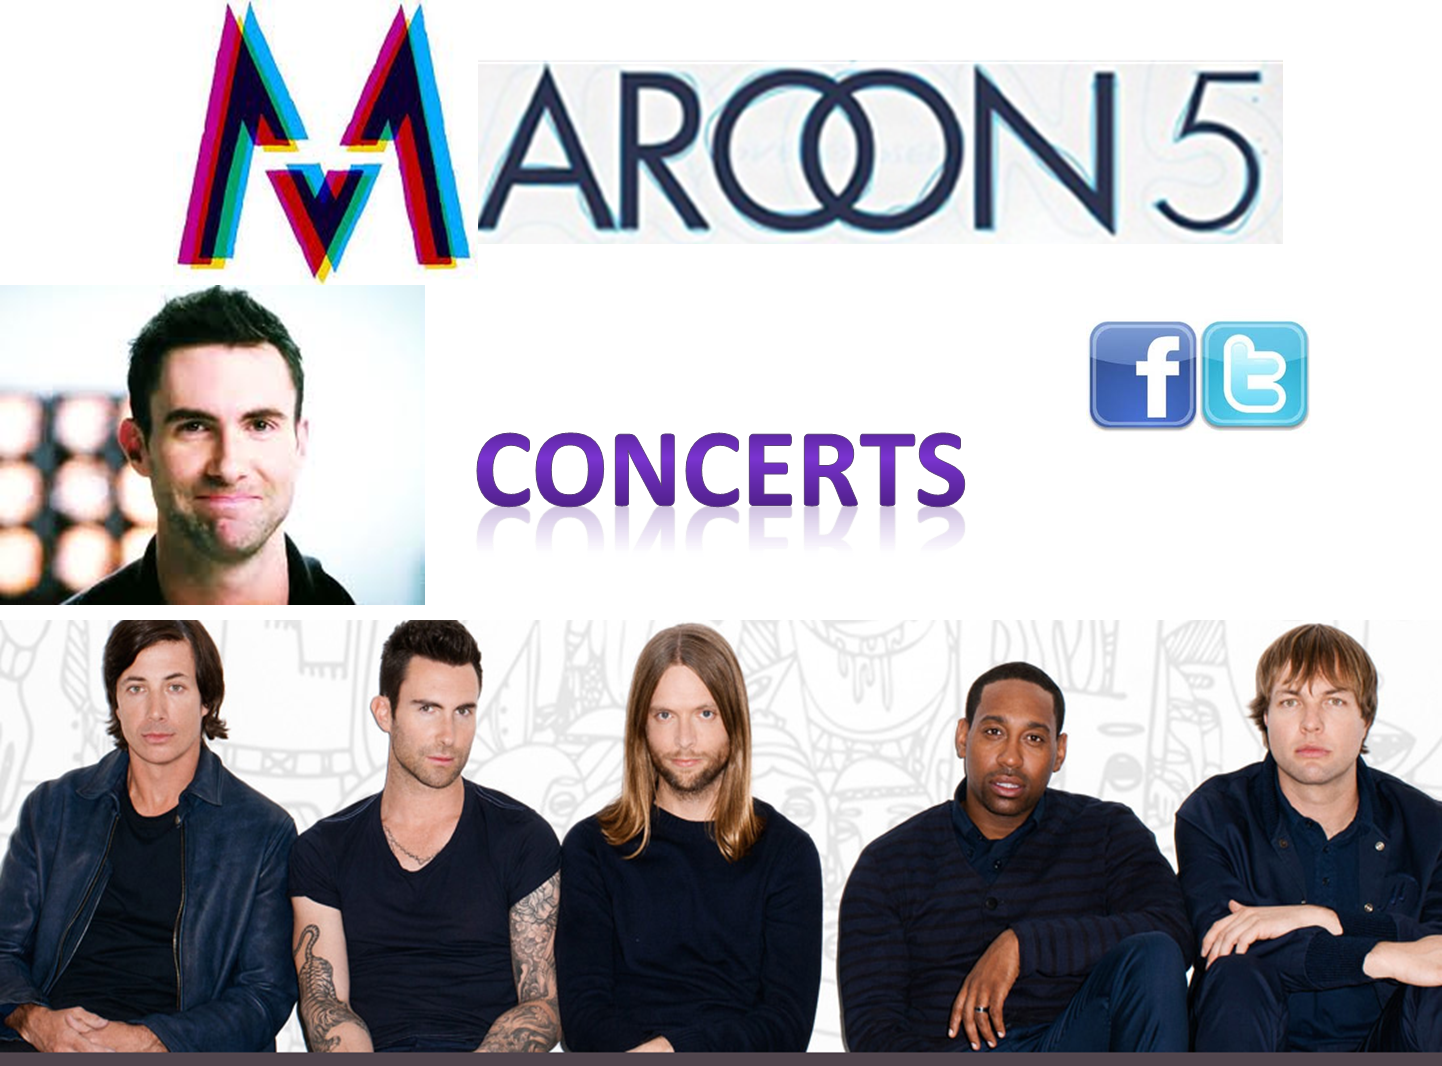 fans de maroon 5 pr sentation de maroon 5 et ses membres. Black Bedroom Furniture Sets. Home Design Ideas